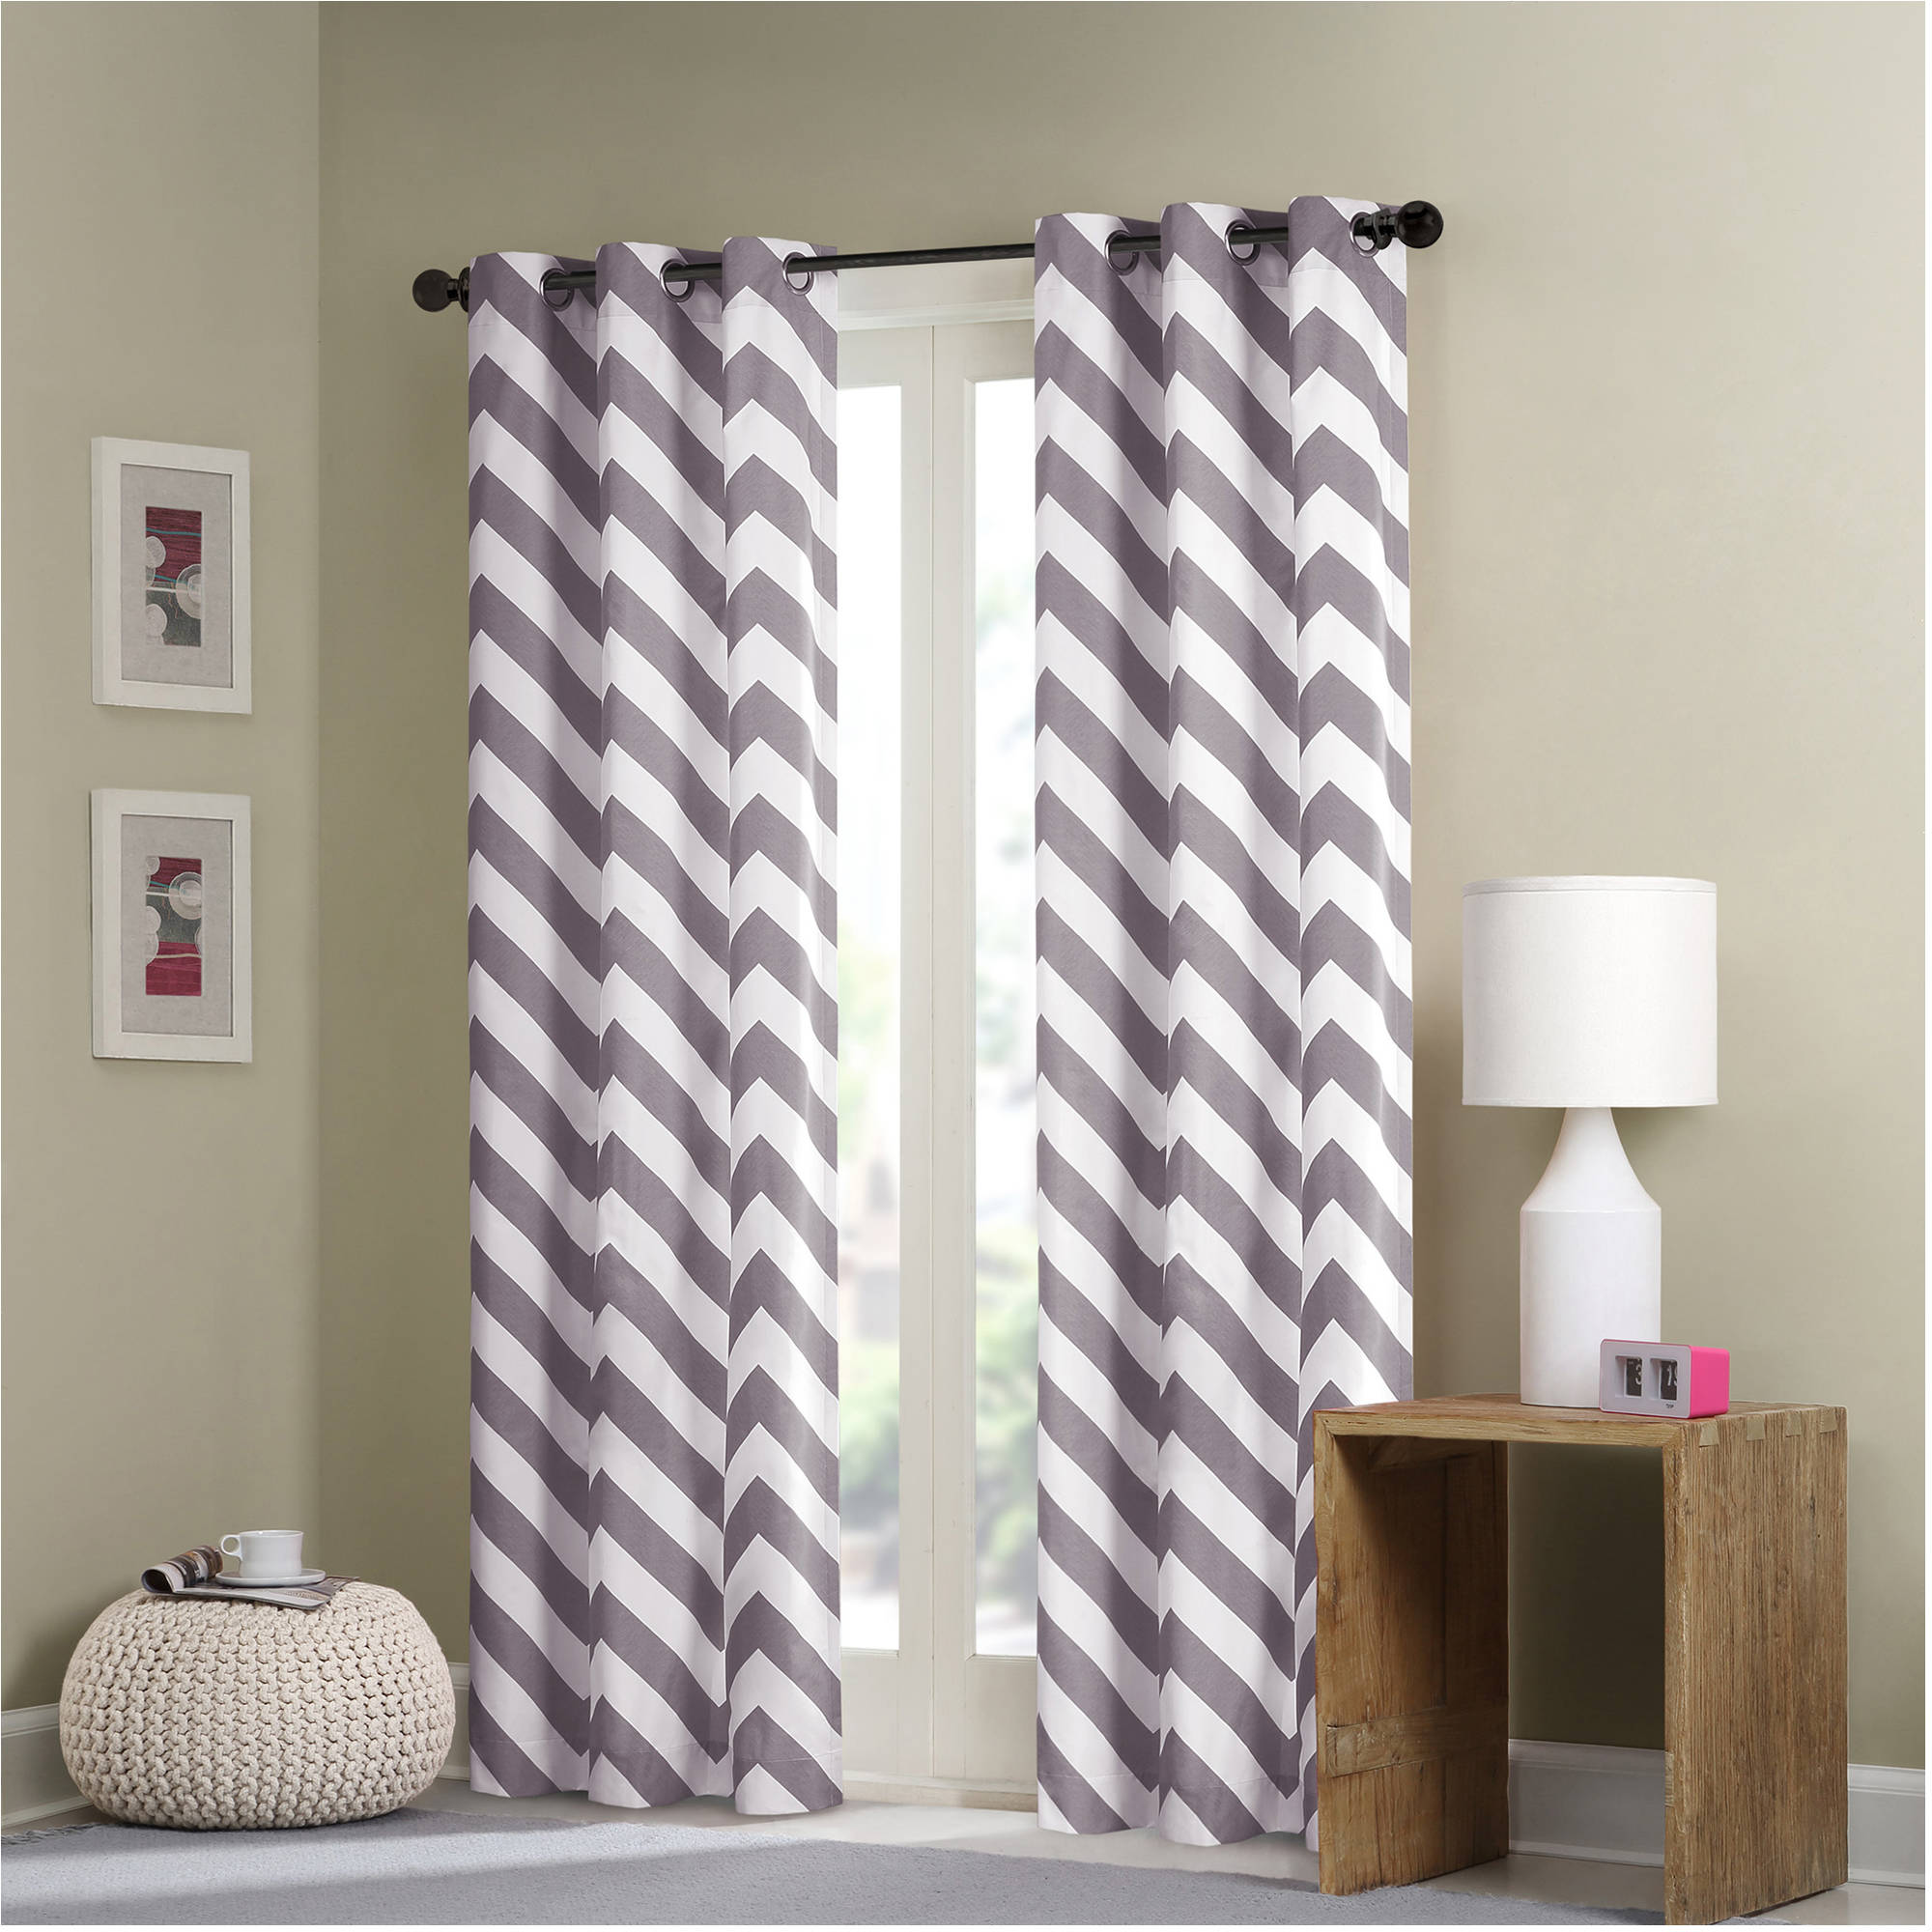 Home Essence Apartment Leo Chevron Window Curtain Pair